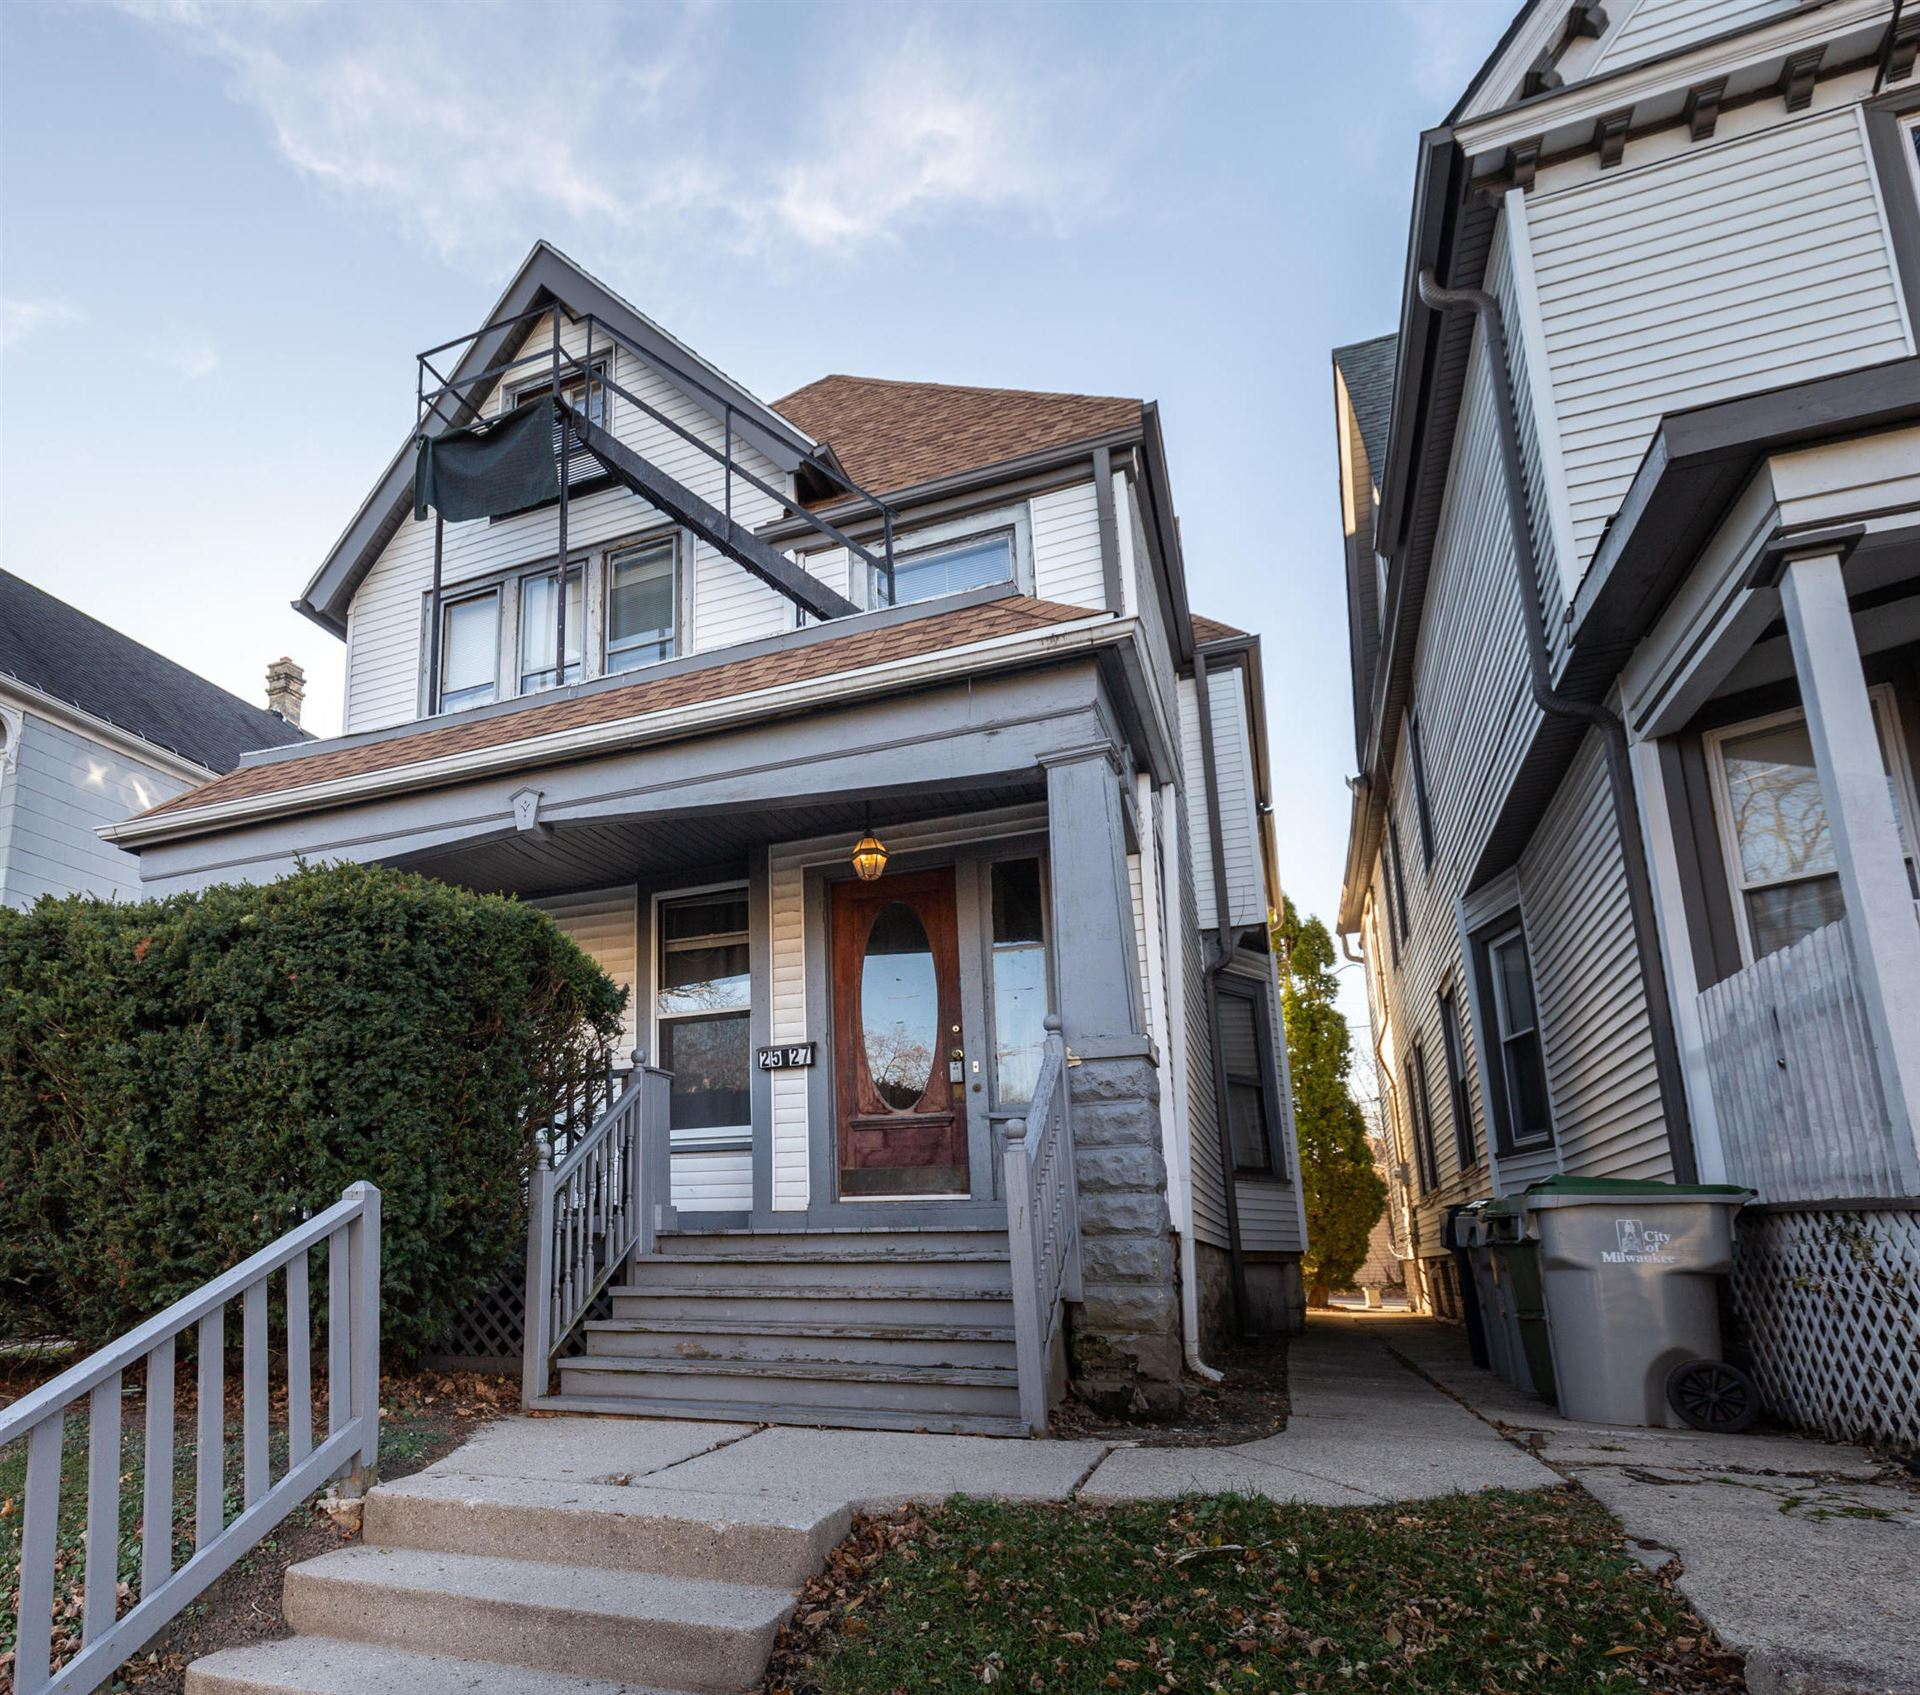 2529 N Murray Ave #2529A, Milwaukee, WI 53211 - MLS#: 1718639